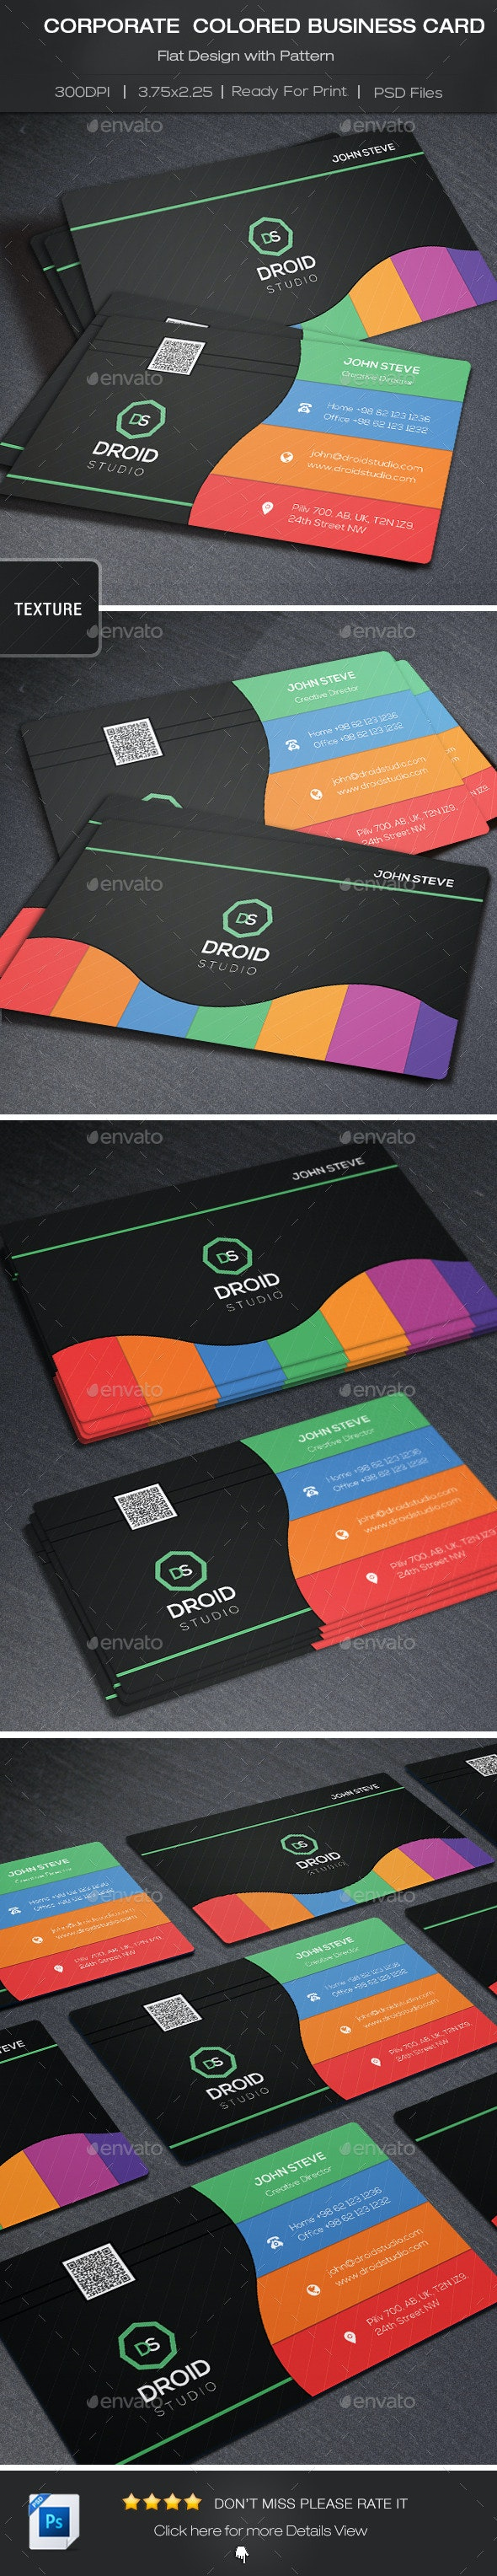 Corporate Colored Business Card - Corporate Business Cards